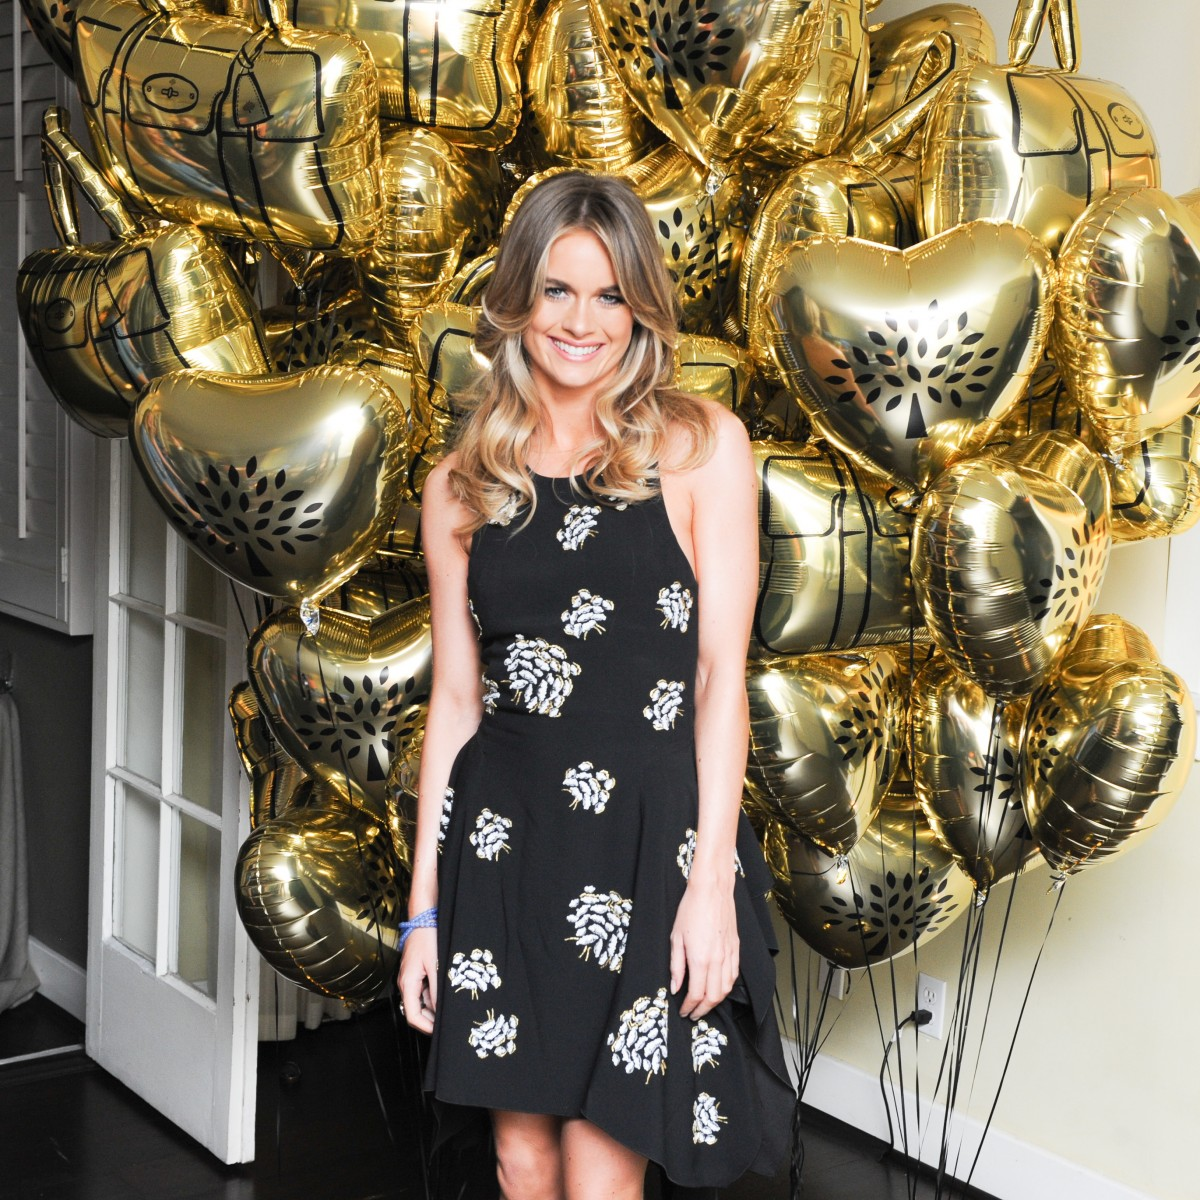 CHARLES FINCH HOSTS 'OUT OF TOWNERS' DINNER IN PARTNERSHIP WITH MULBERRY AT CHATEAU MARMONT